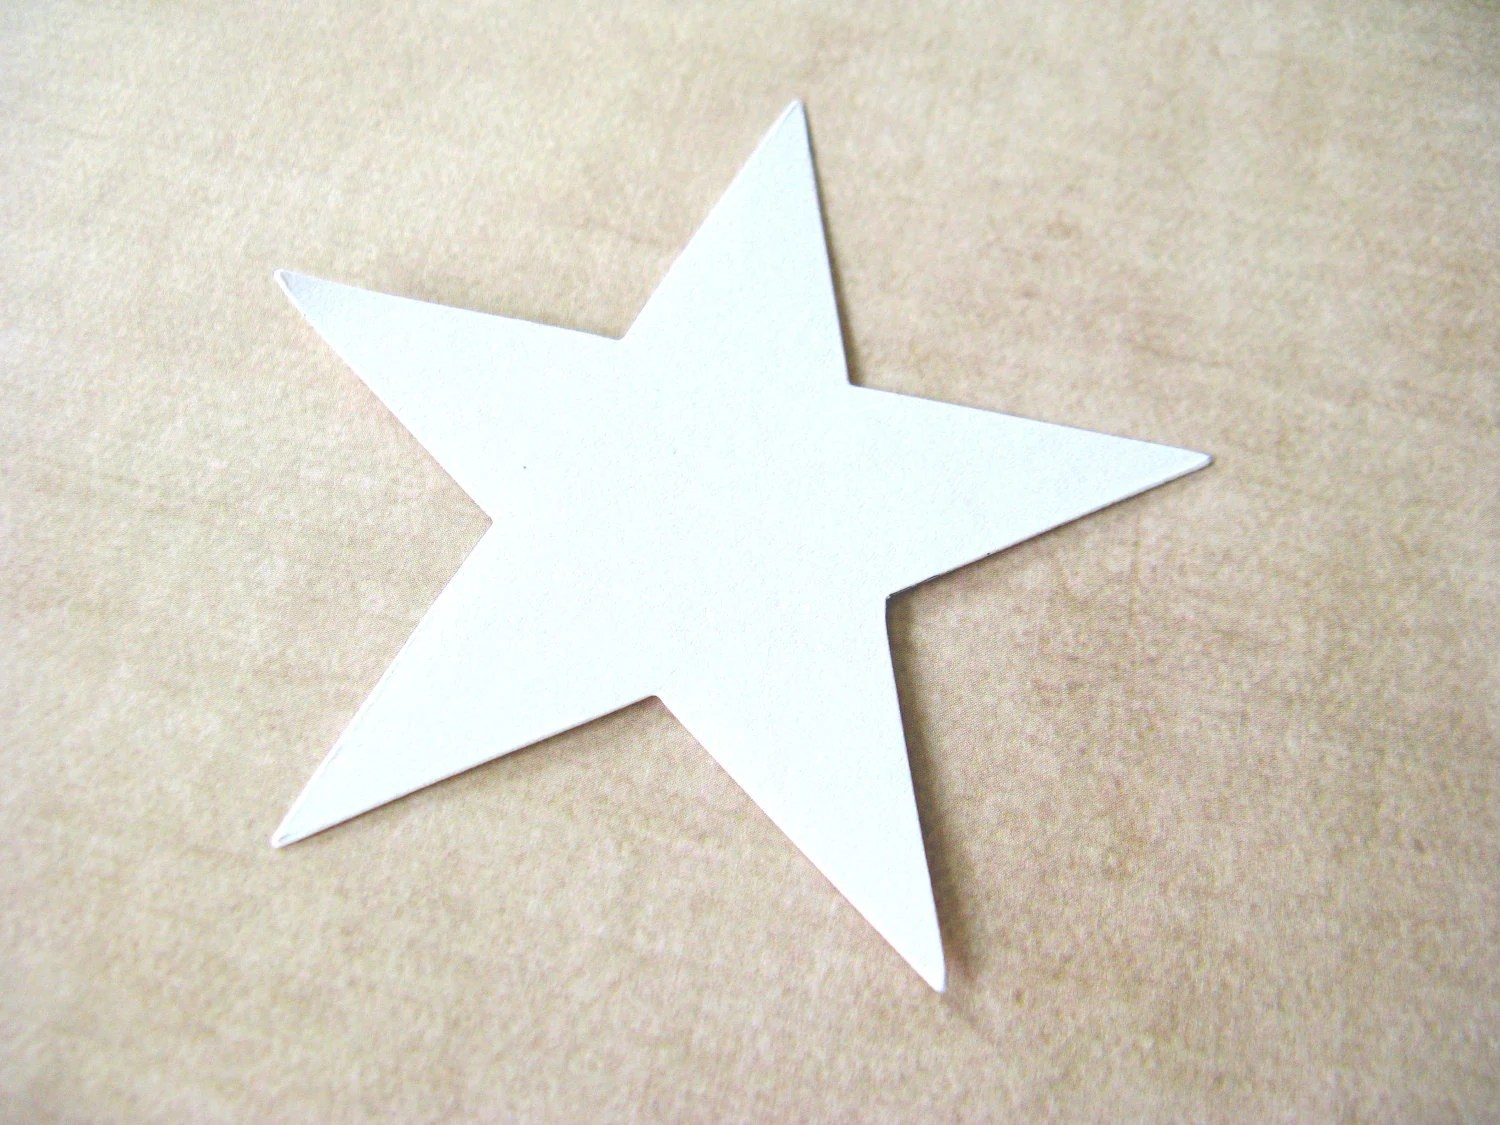 24 Large White Stars, 3 Inch, Scrapbooking, Embellishments - CatchSomeRaes